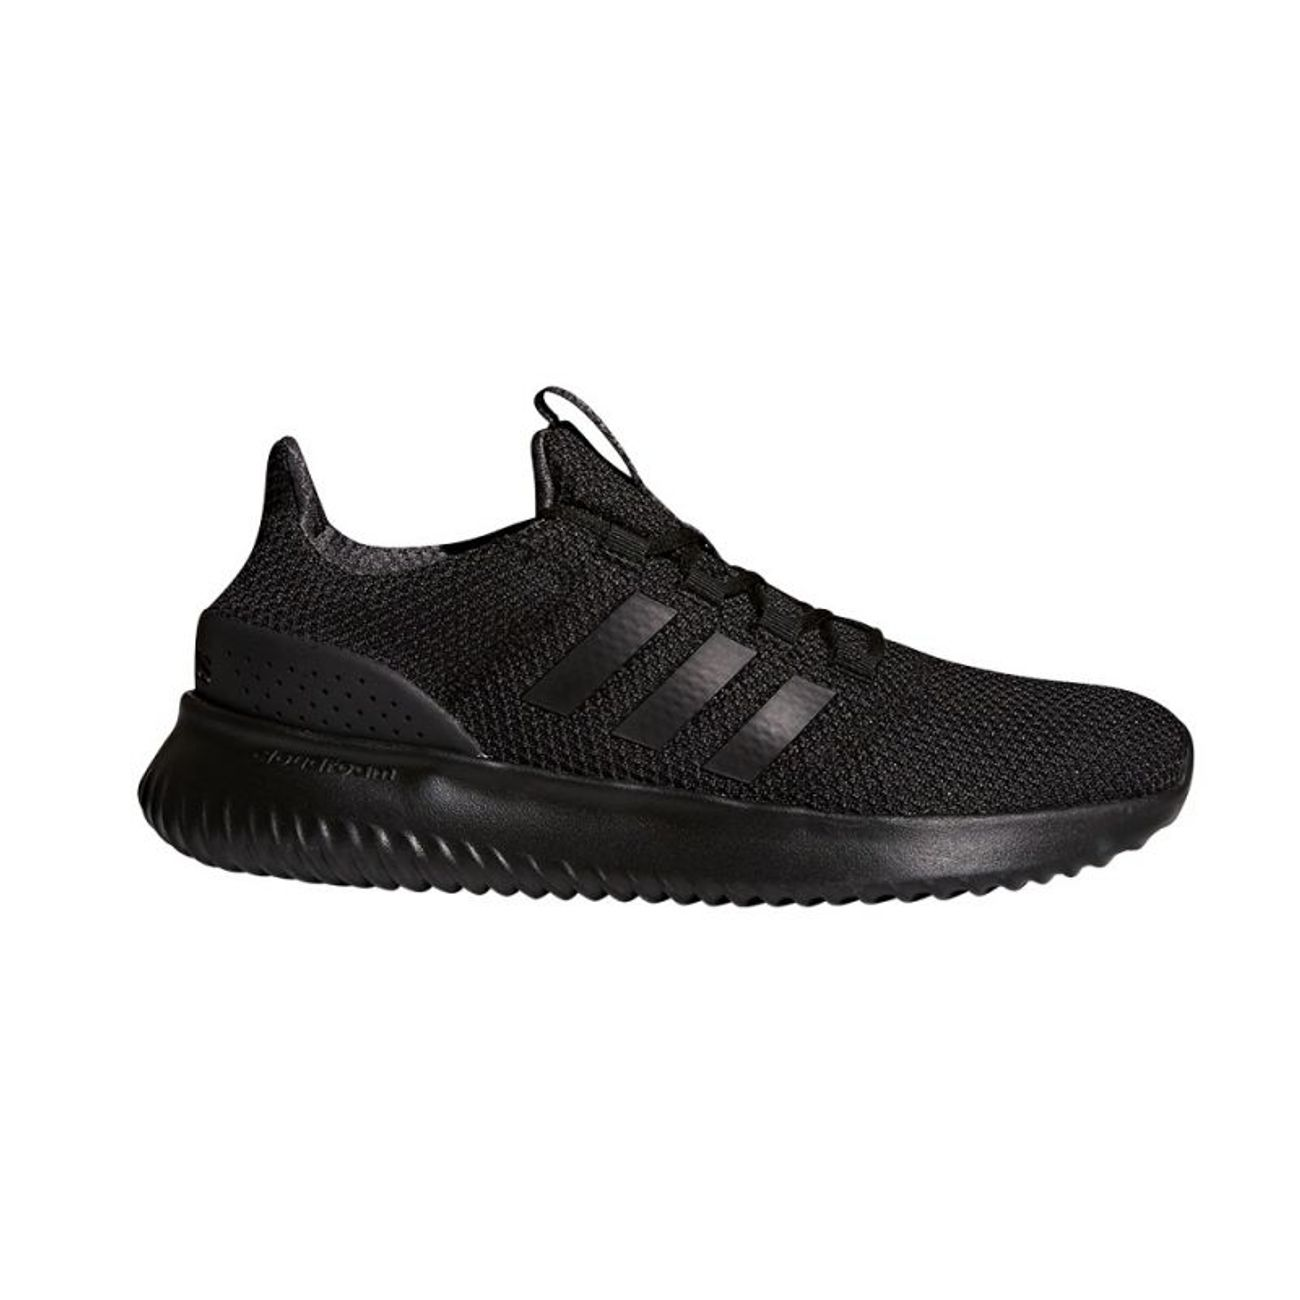 En Cloudfoam Lifestyle Gros Neo Chaussures Femme Ultimate